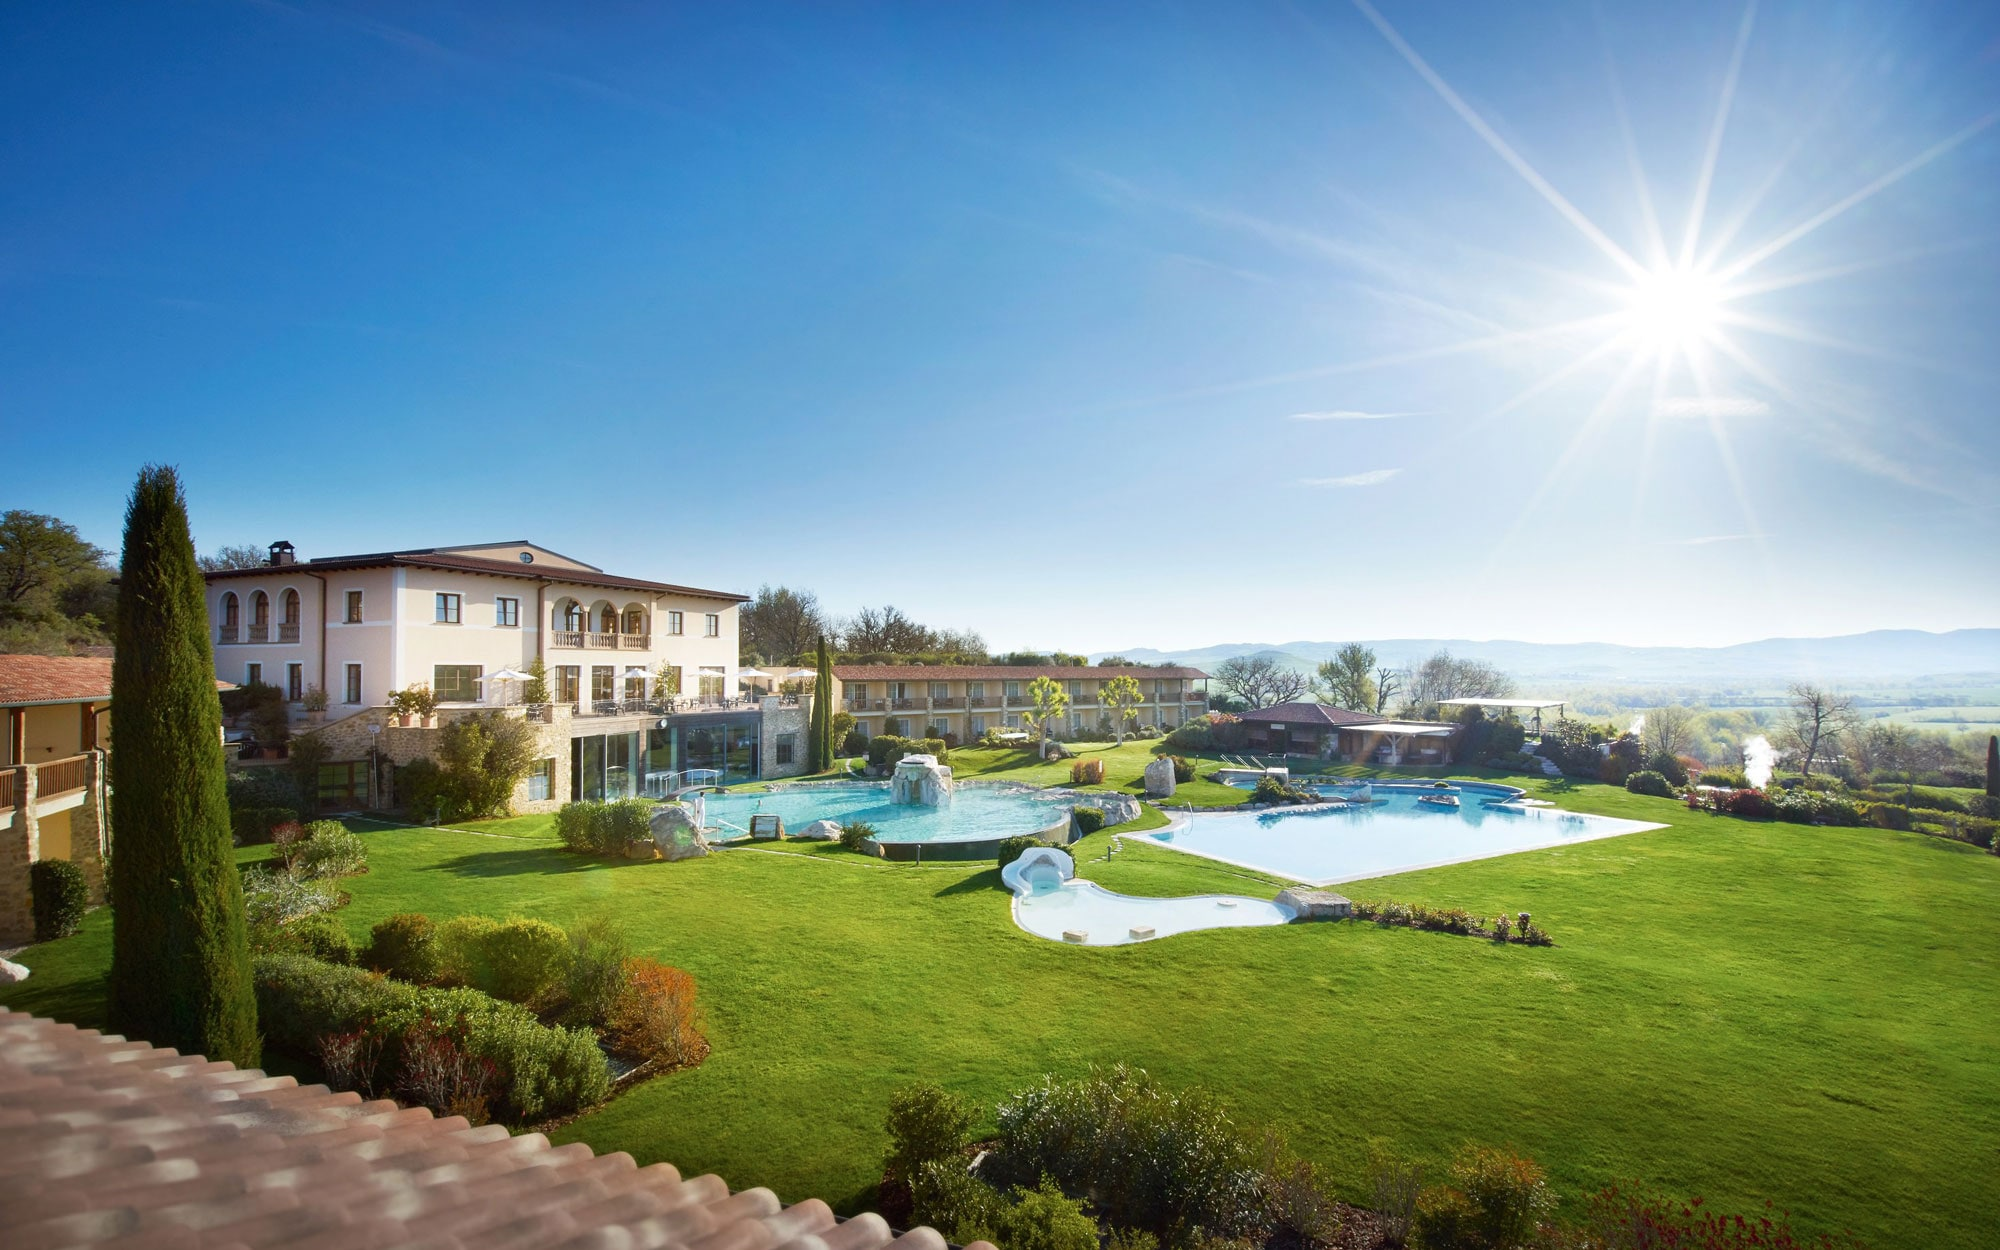 Hotel Adler Thermae Spa  Relax Resort Review Bagno Vignoni Tuscany  Travel